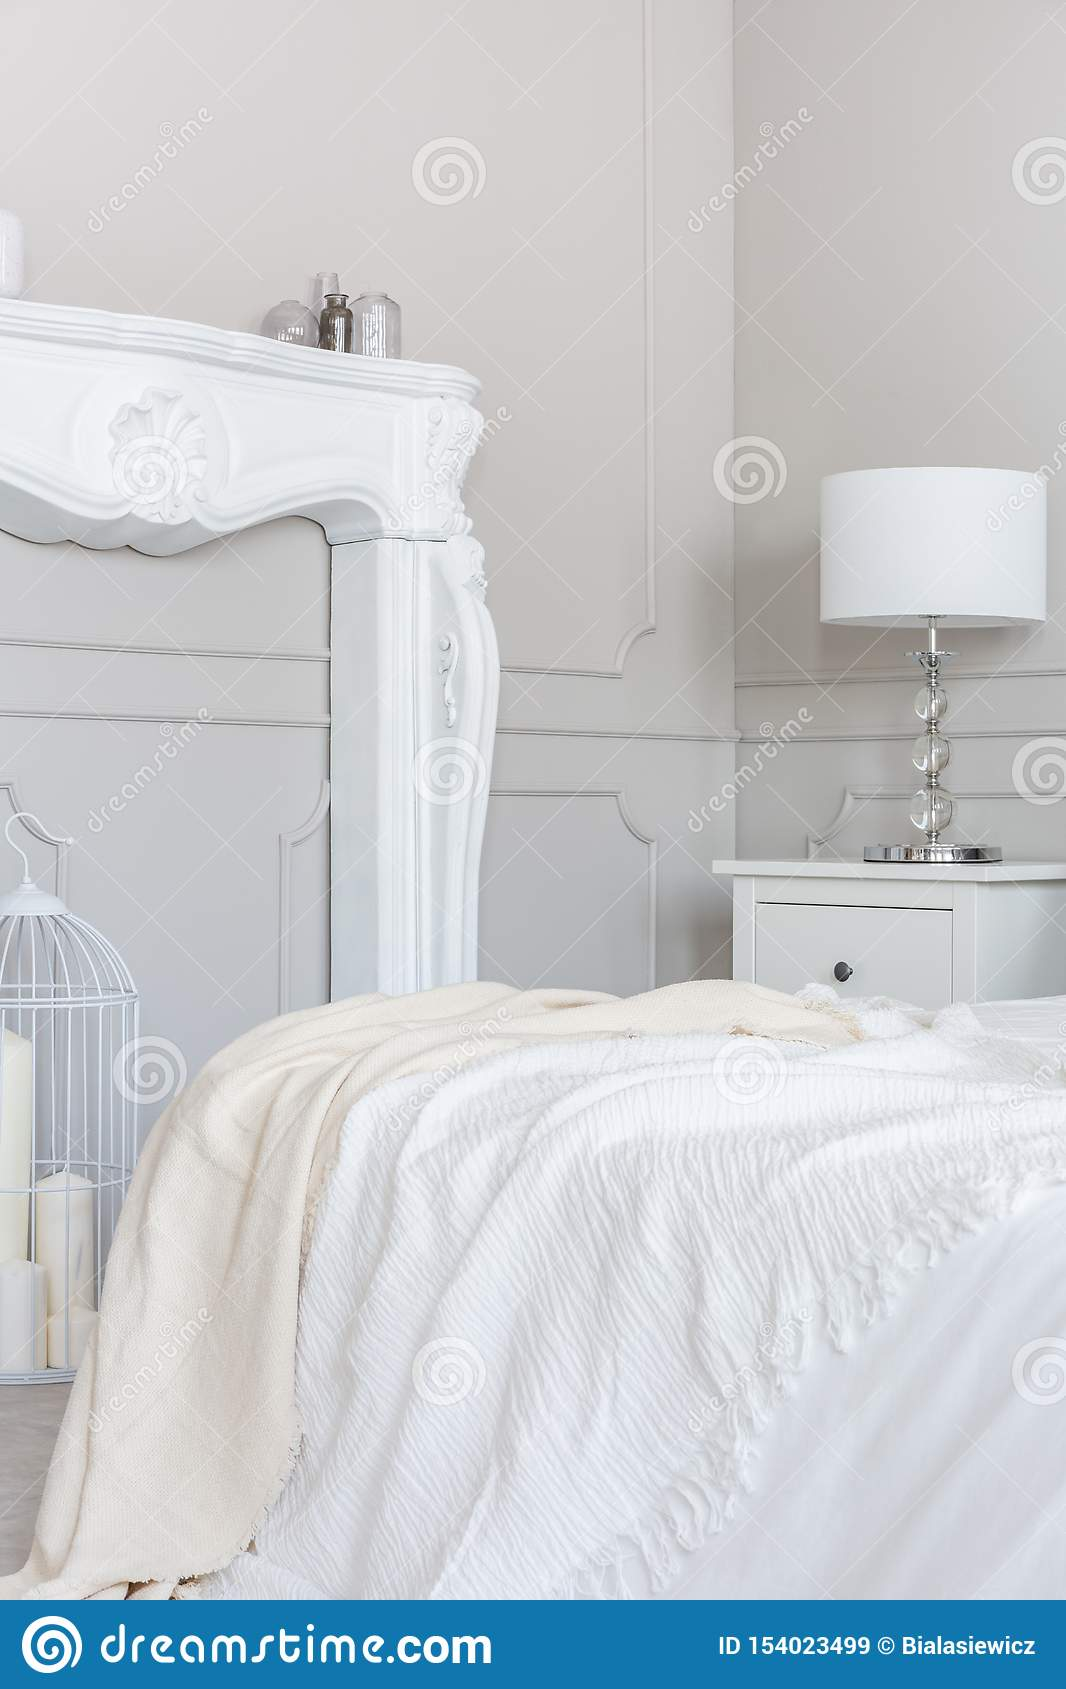 Picture of: White Wooden Fireplace Portal In Beautiful Bedroom Interior With White Sheets On King Size Bed Stock Image Image Of Floor Decor 154023499